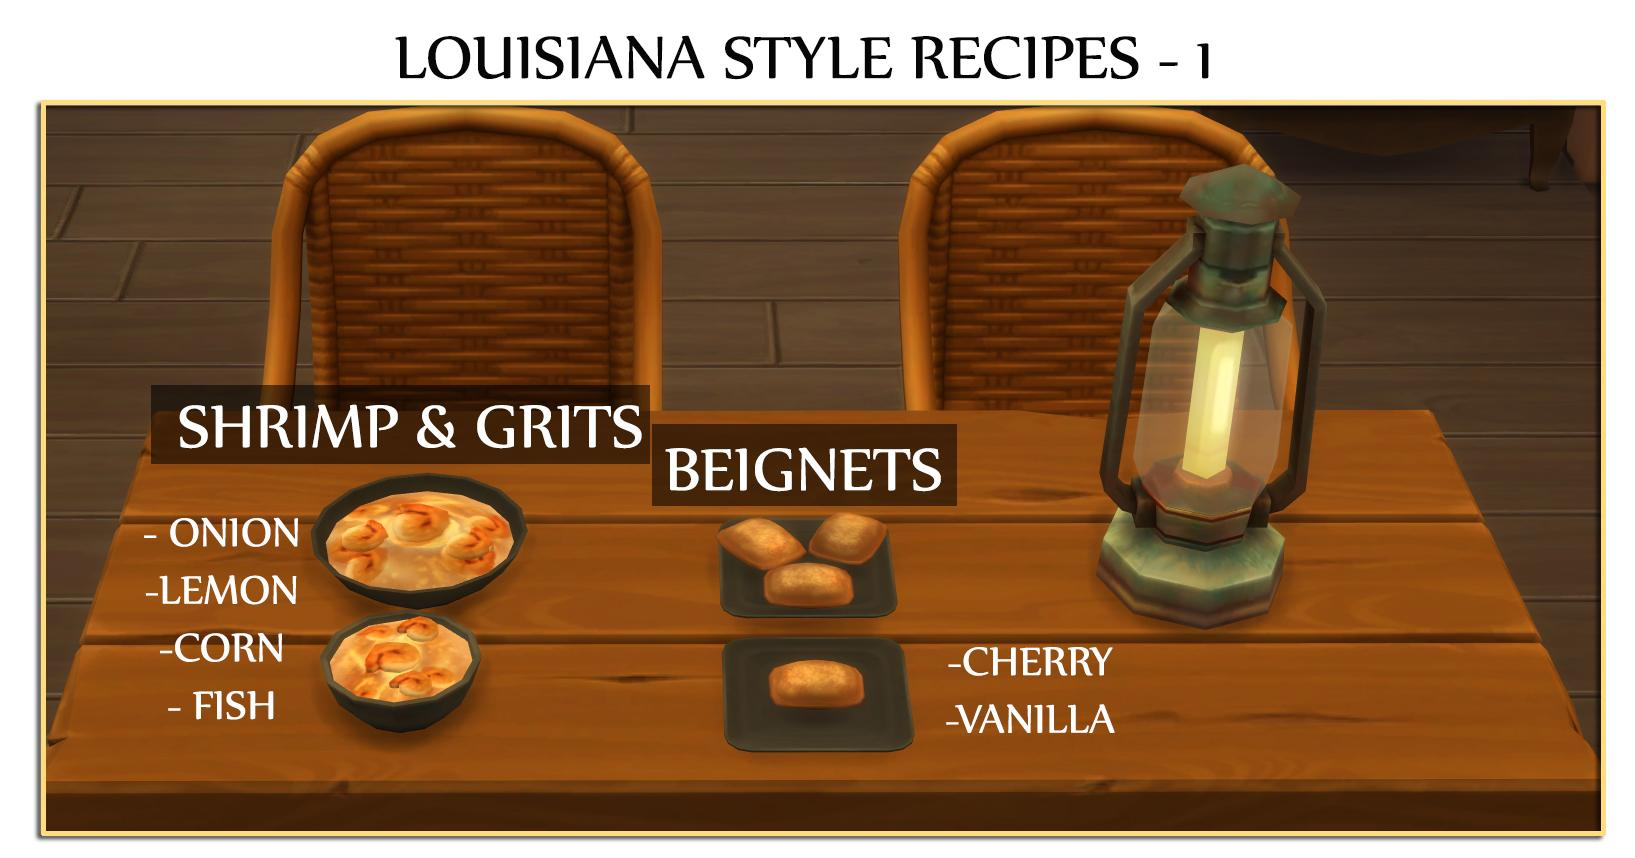 Louisiana Style Recipes I - Beignets and Shrimp Grits (Update - 14.12.2019)